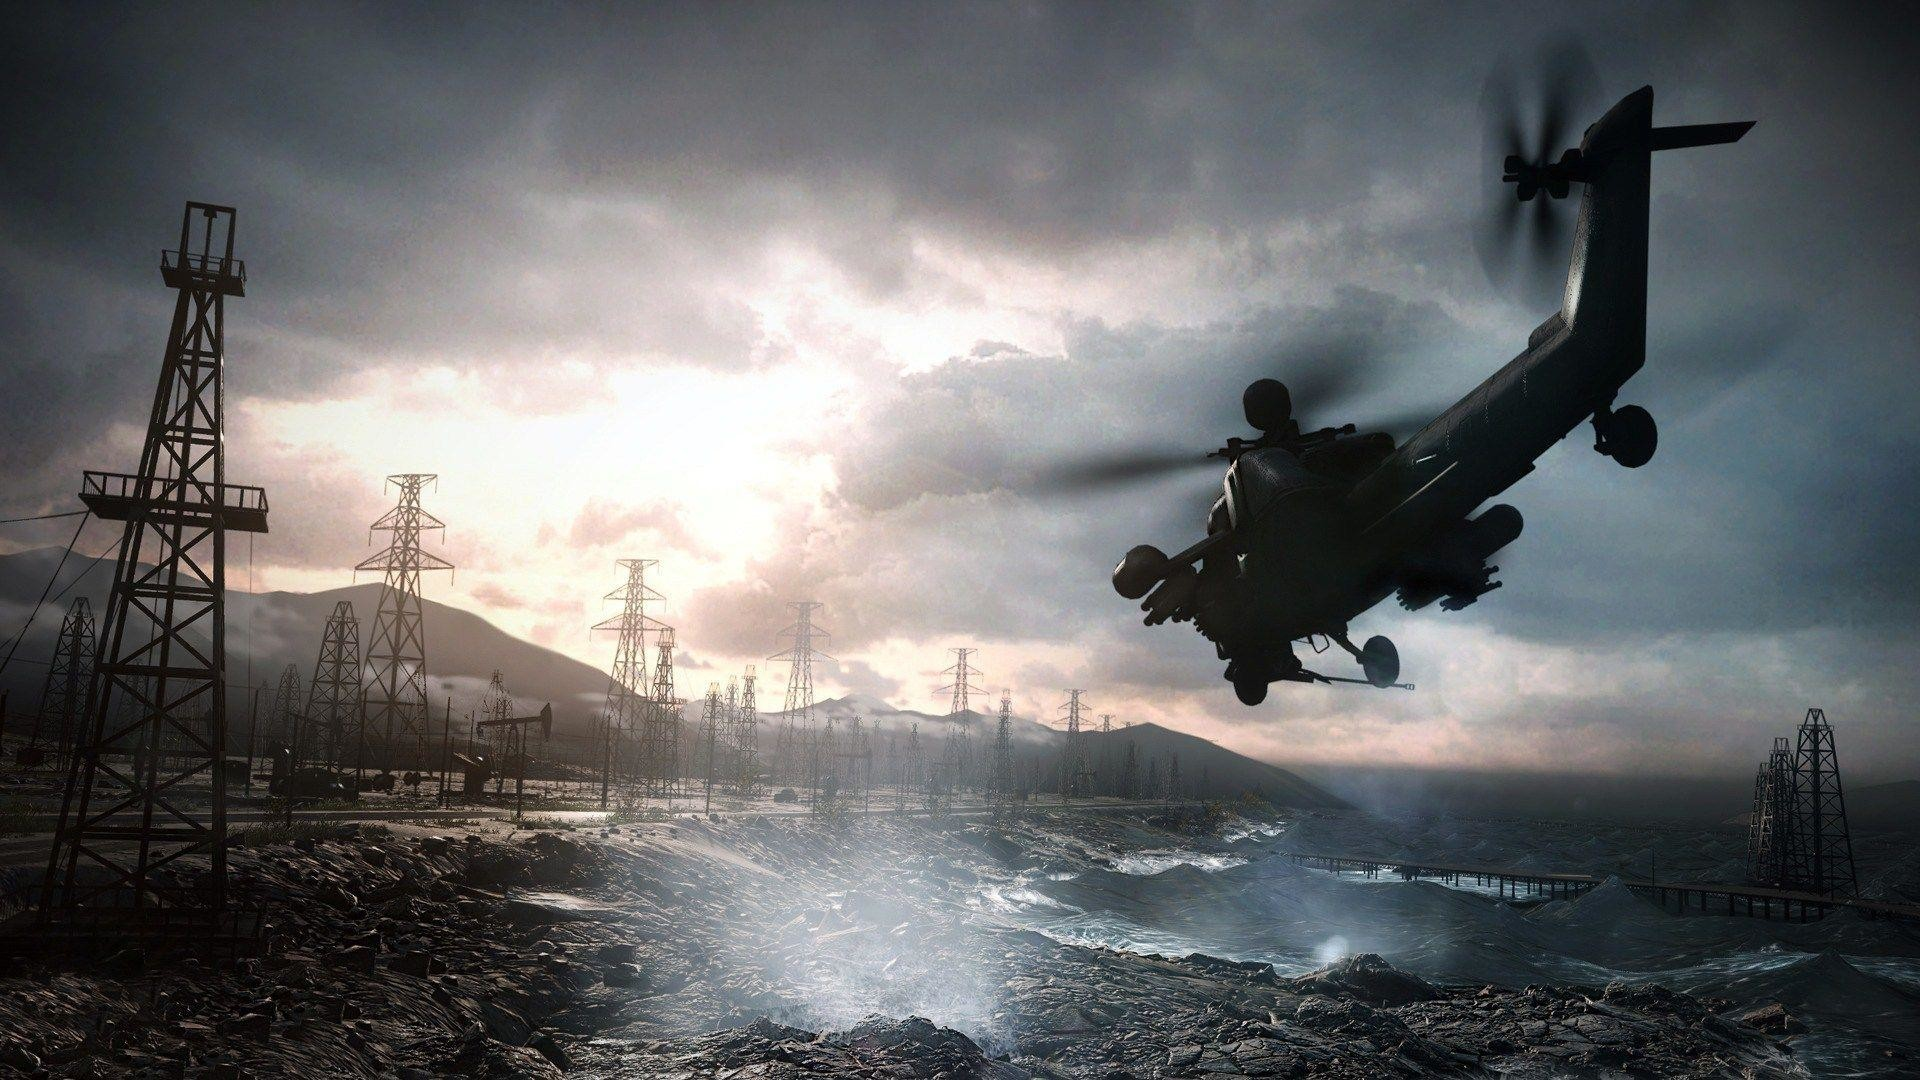 1920x1080 hd wallpapers battlefield 4 80 images 1920x1080 battlefield 4 wallpaper 1080p 63 voltagebd Images